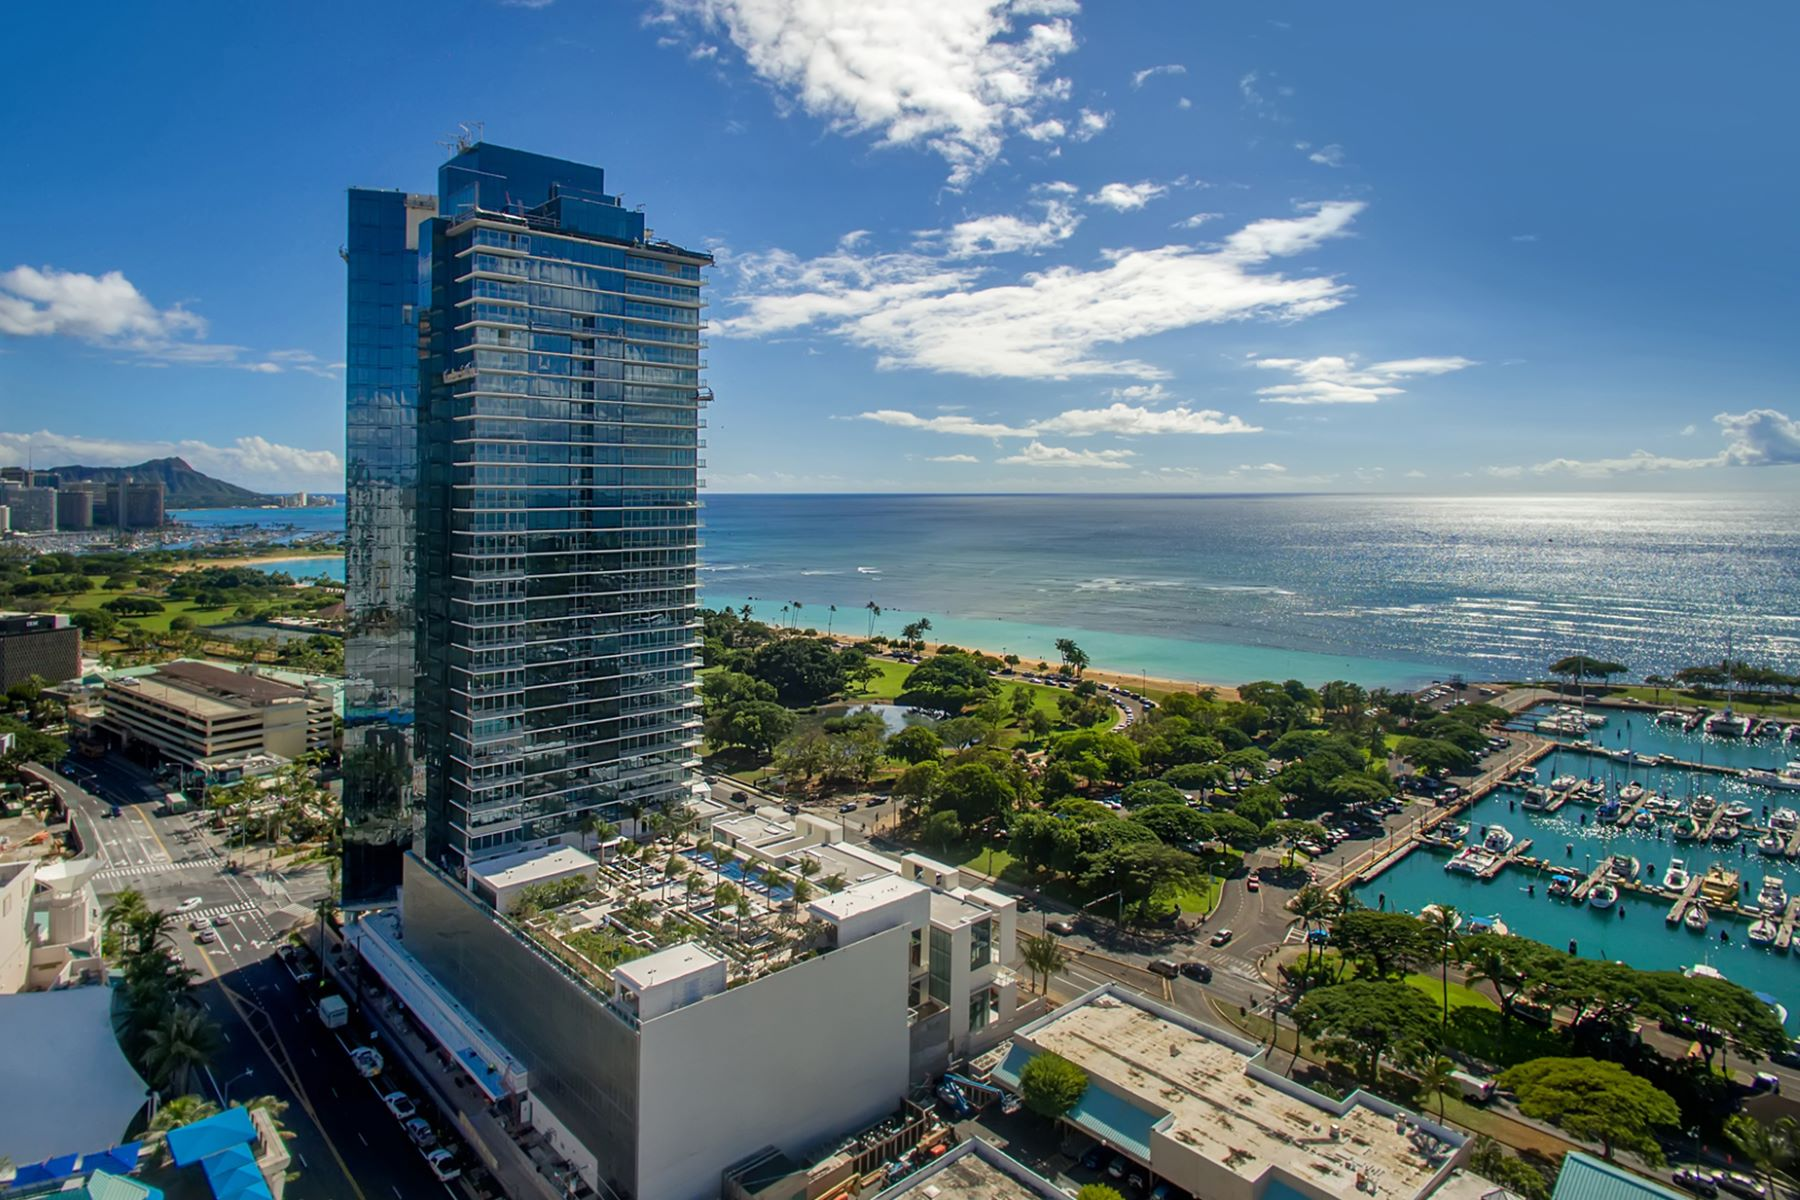 Additional photo for property listing at Majestic Waiea Grand Penthouse 1118 Ala Moana Boulevard #GPH 35 Honolulu, Hawaii 96814 United States